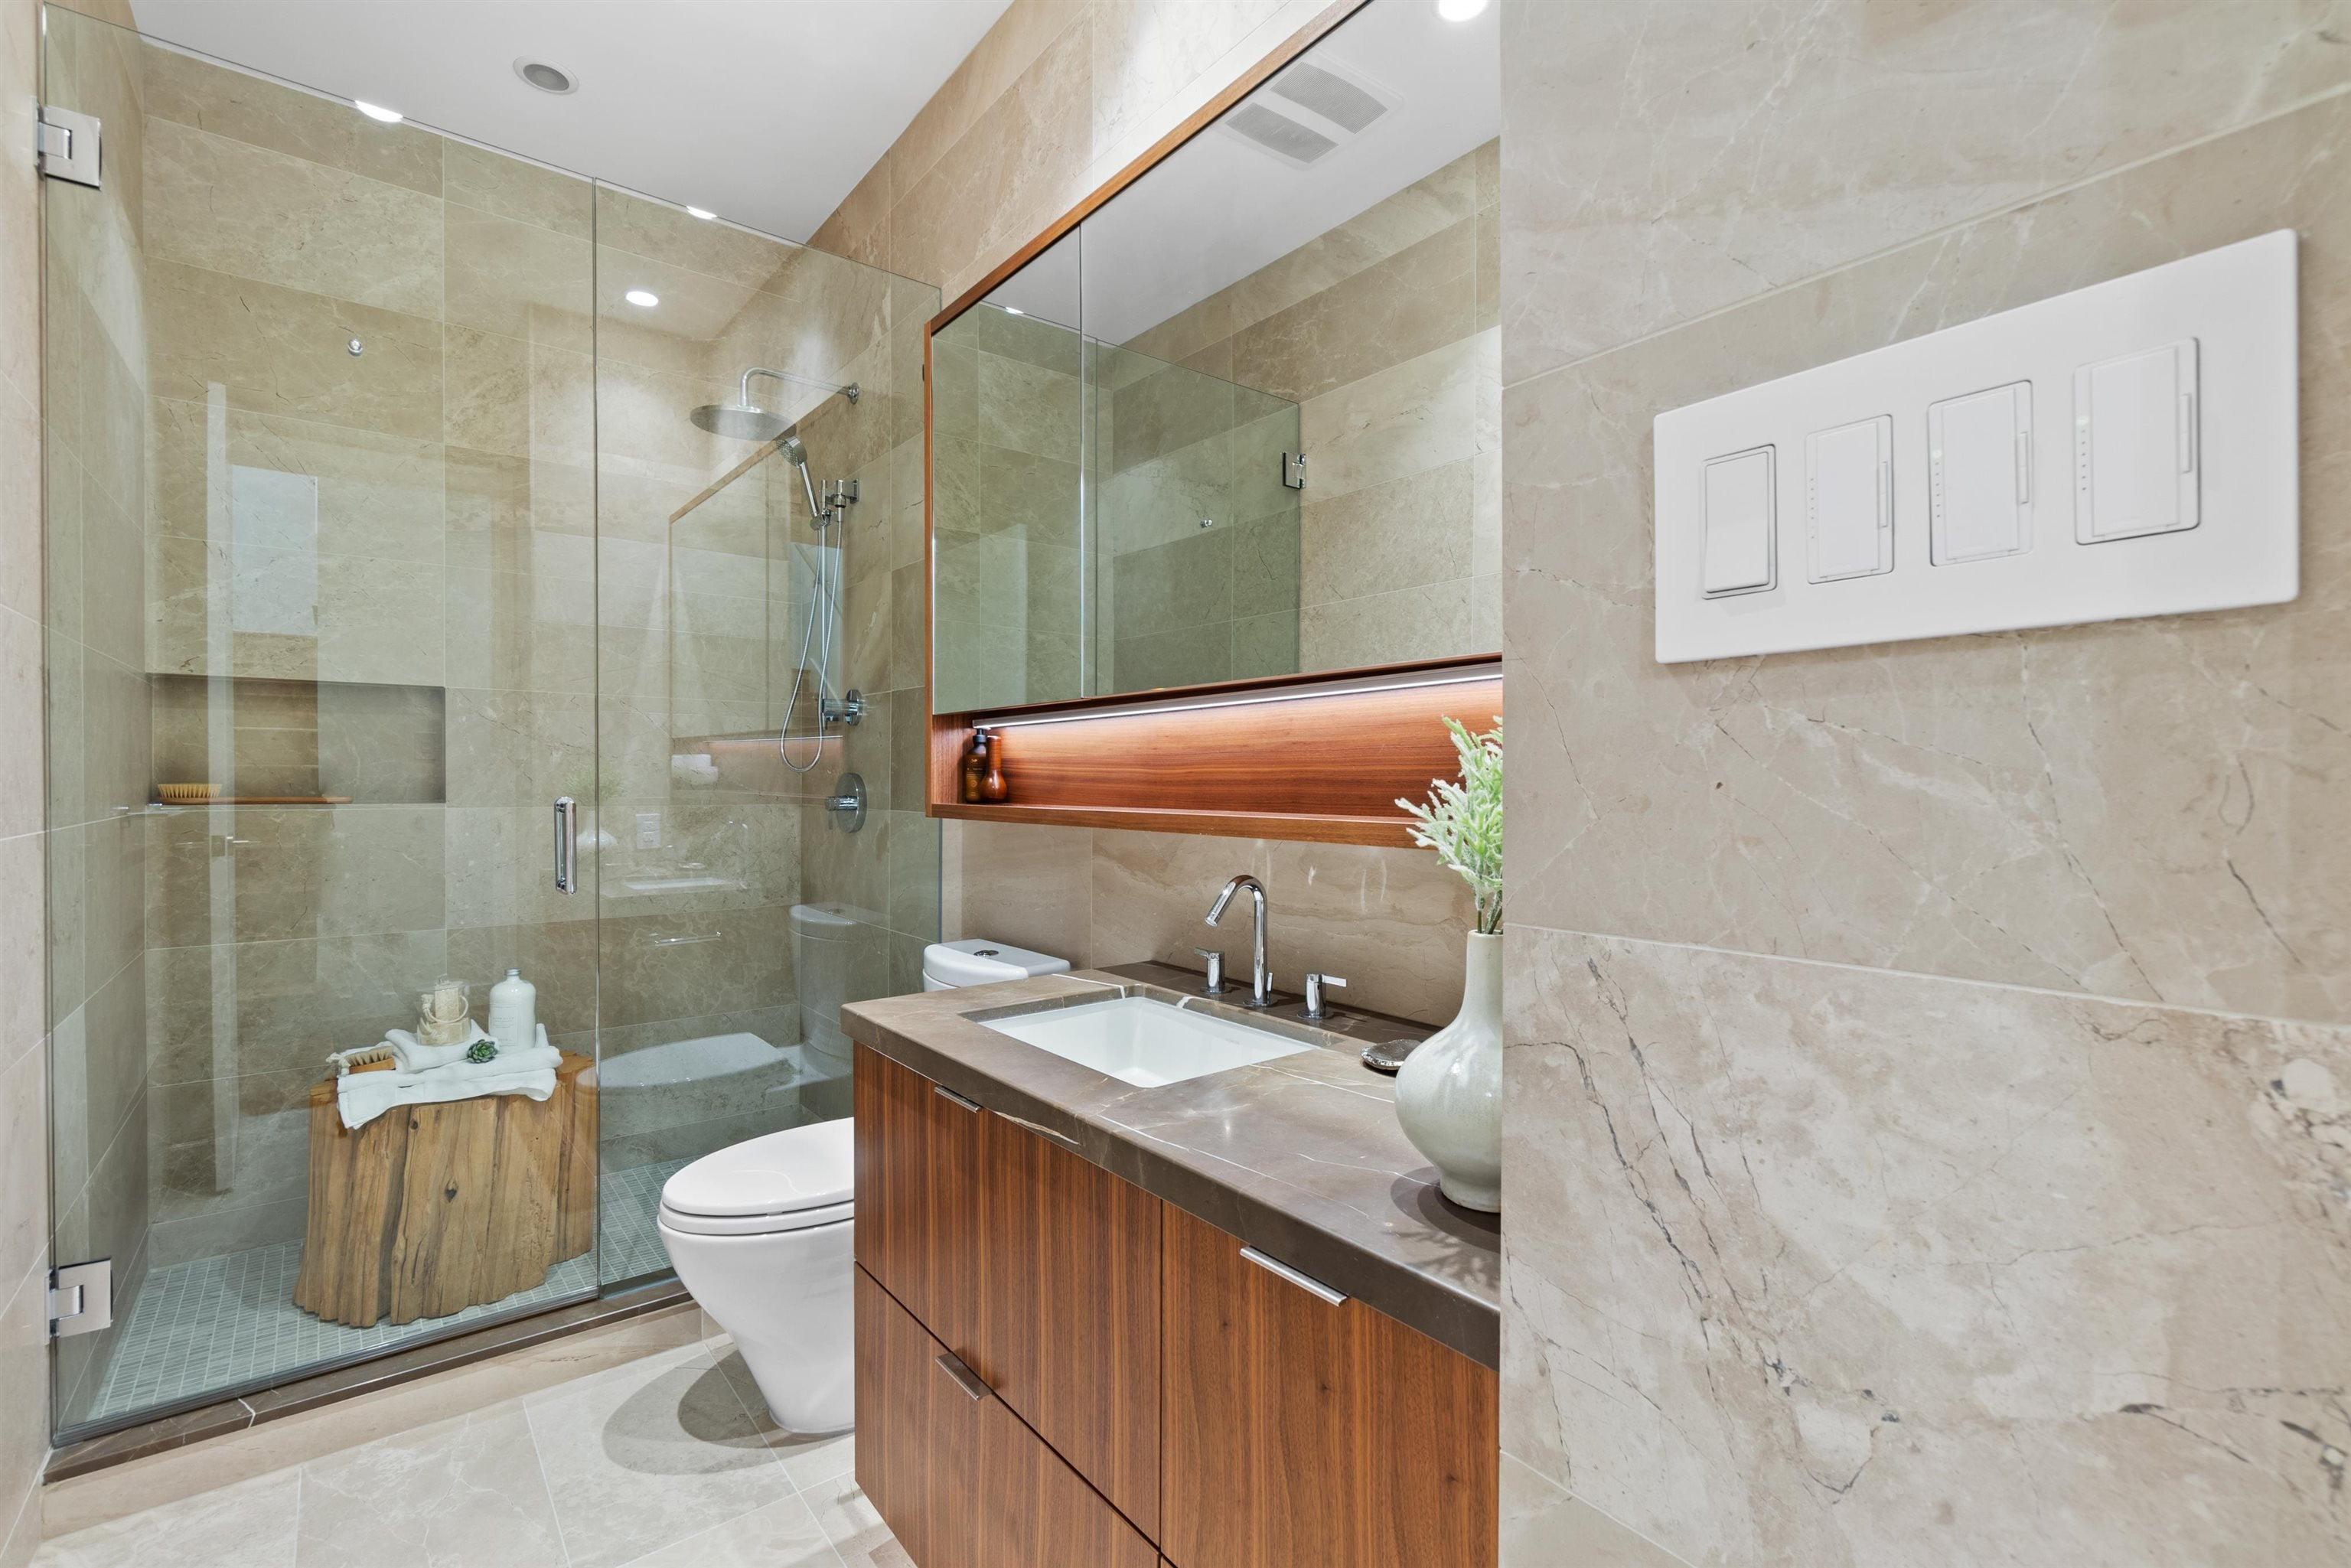 2402 125 E 14TH STREET - Central Lonsdale Apartment/Condo for sale, 2 Bedrooms (R2617870) - #31